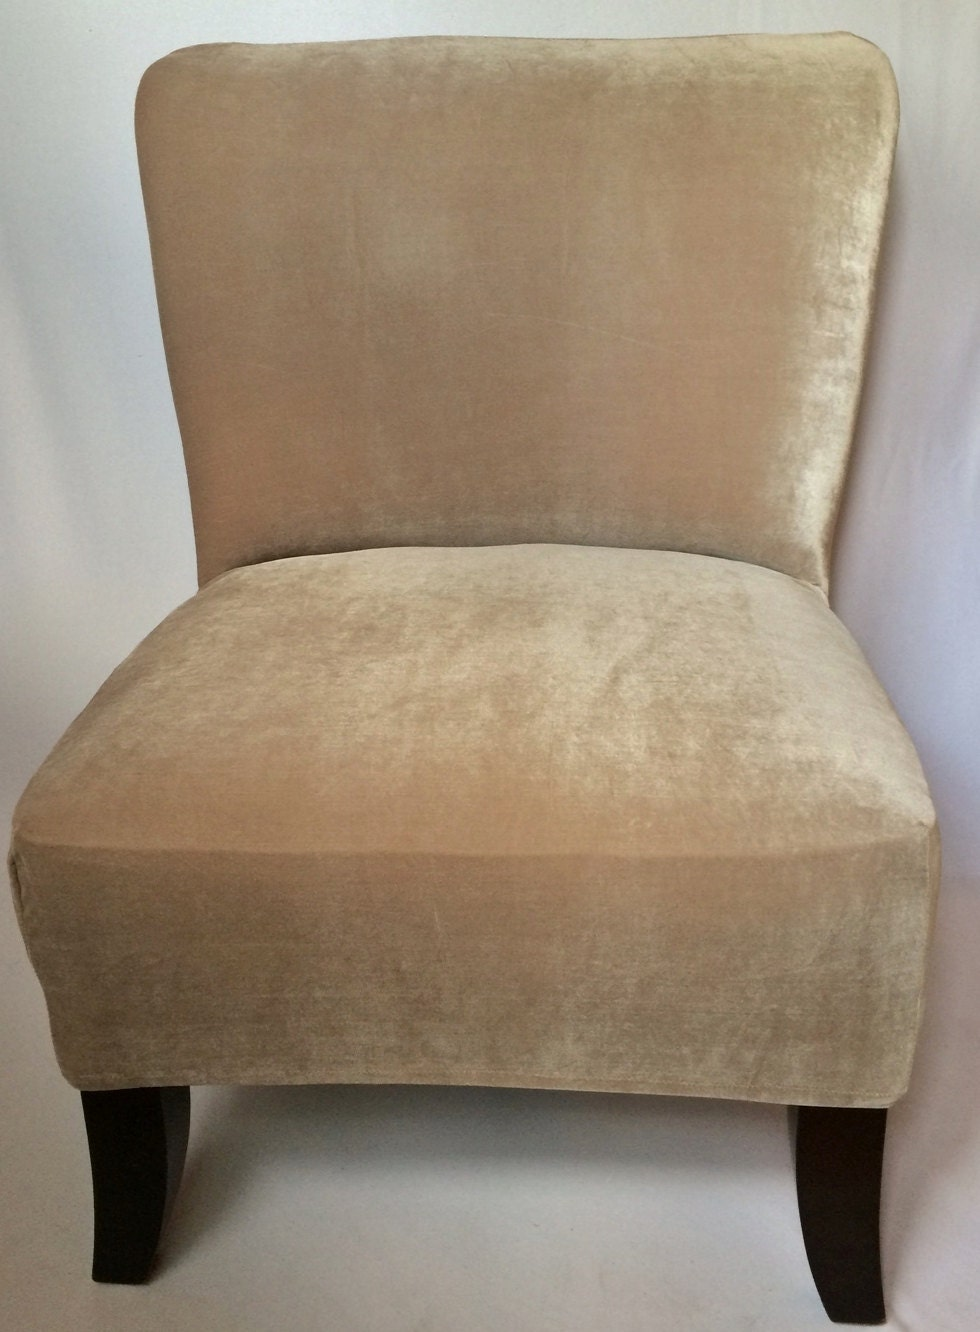 Slipcover beige velvet stretch chair cover for armless chair Slipcovers for chairs